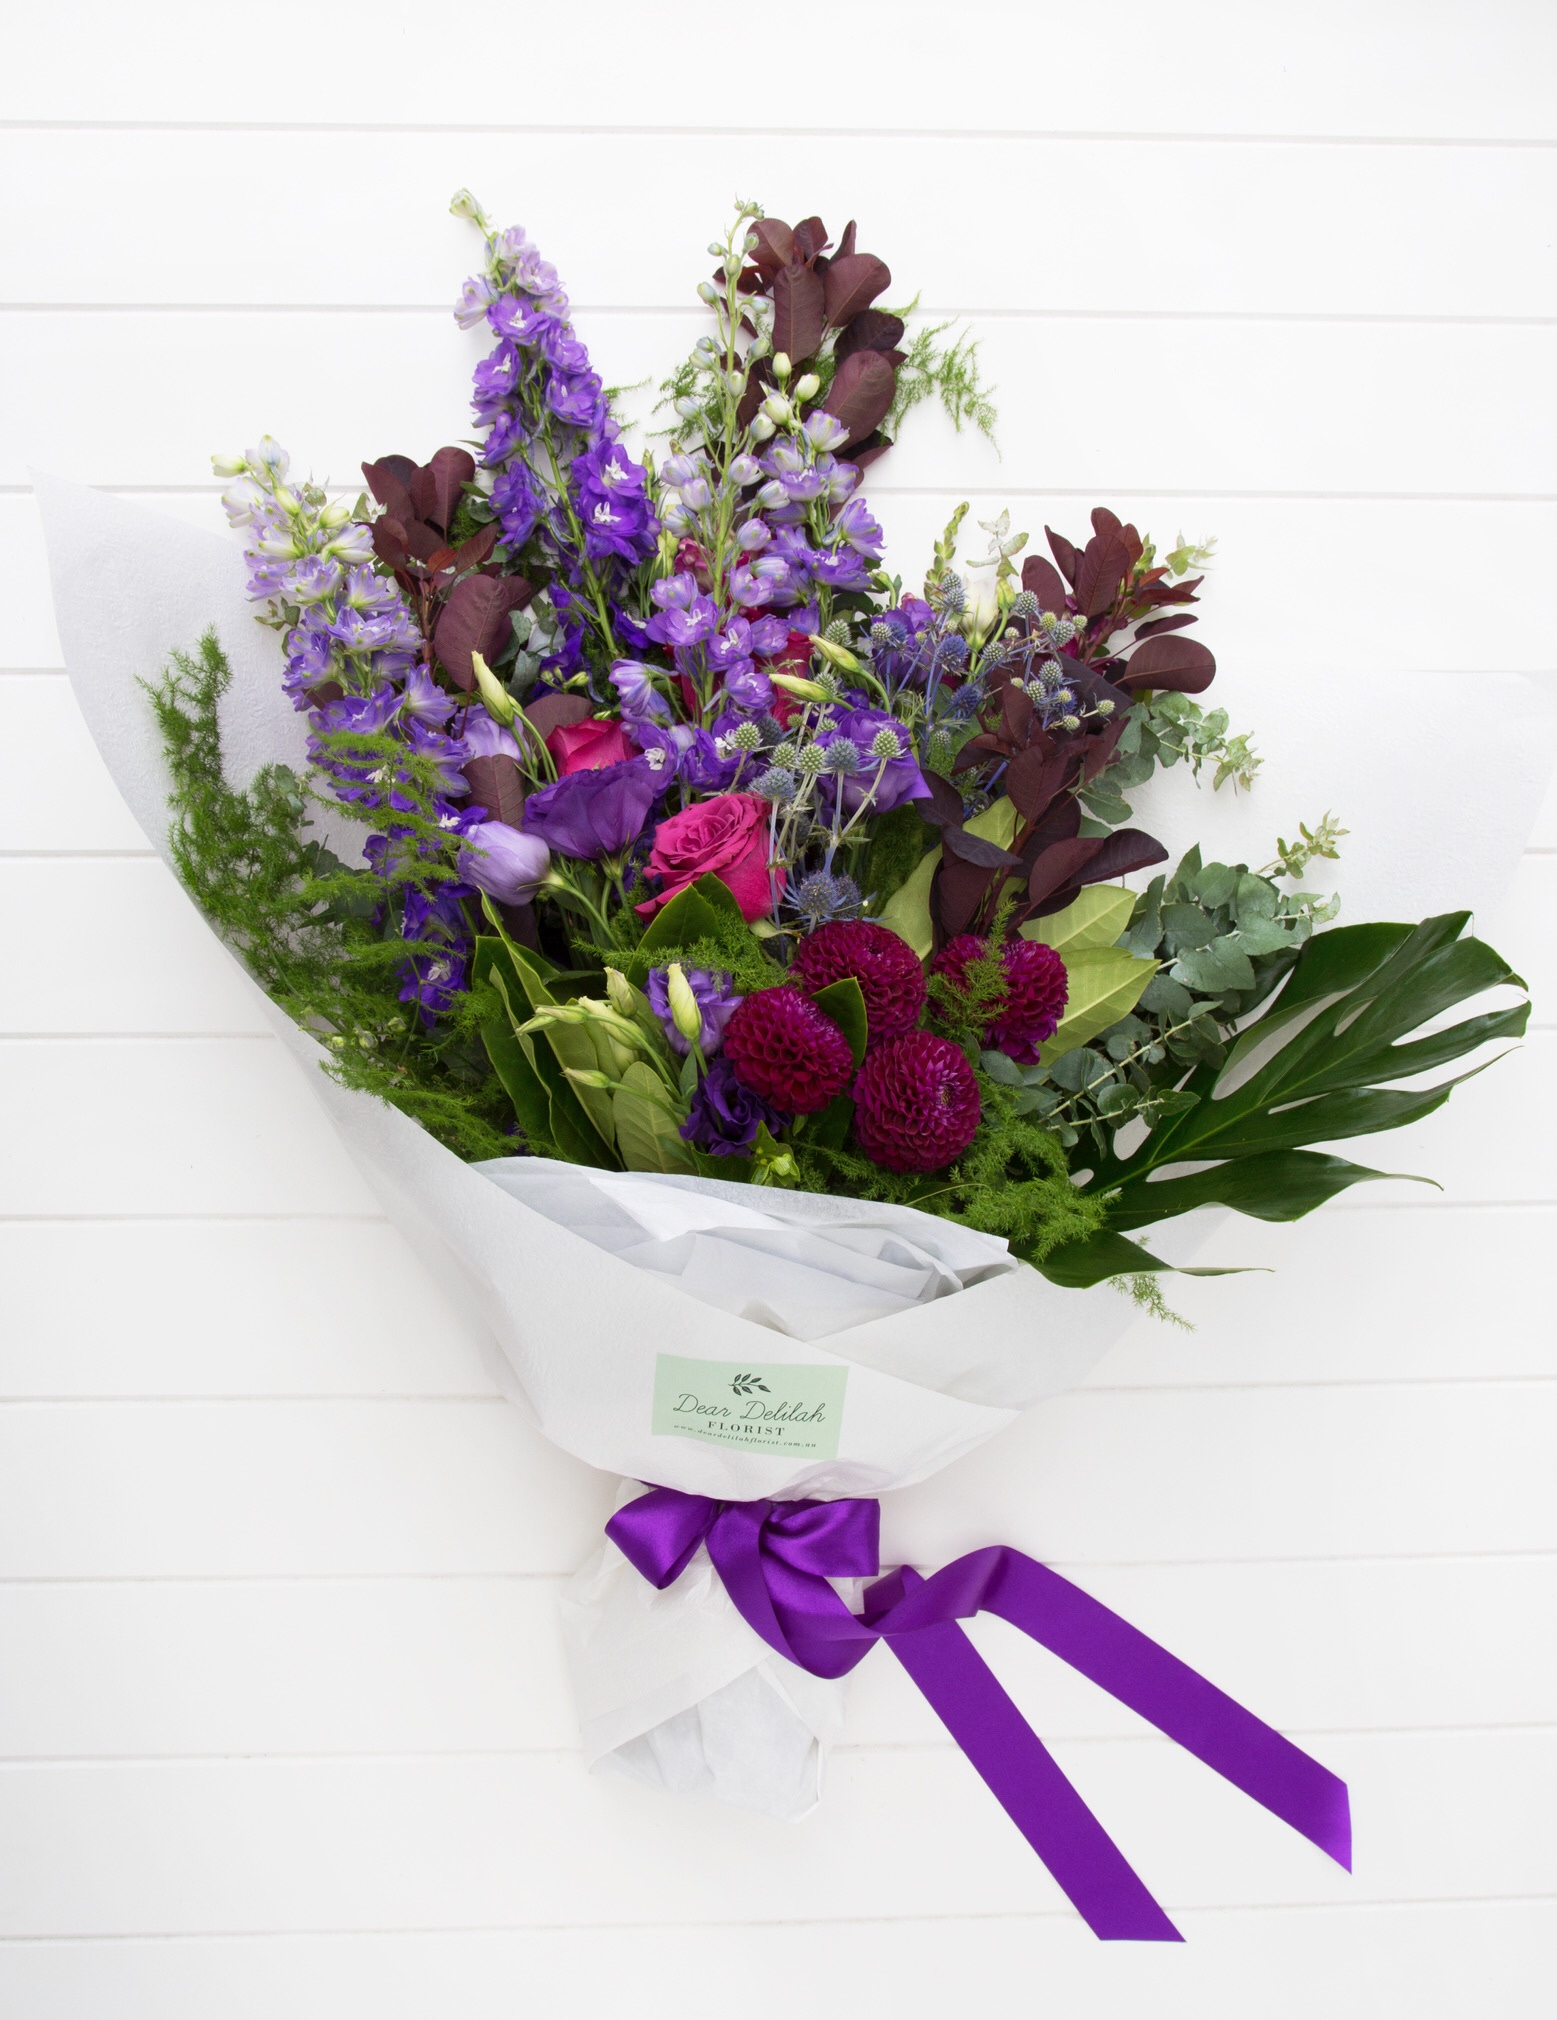 Jewel | Dear Delilah Florist, Latrobe Valley